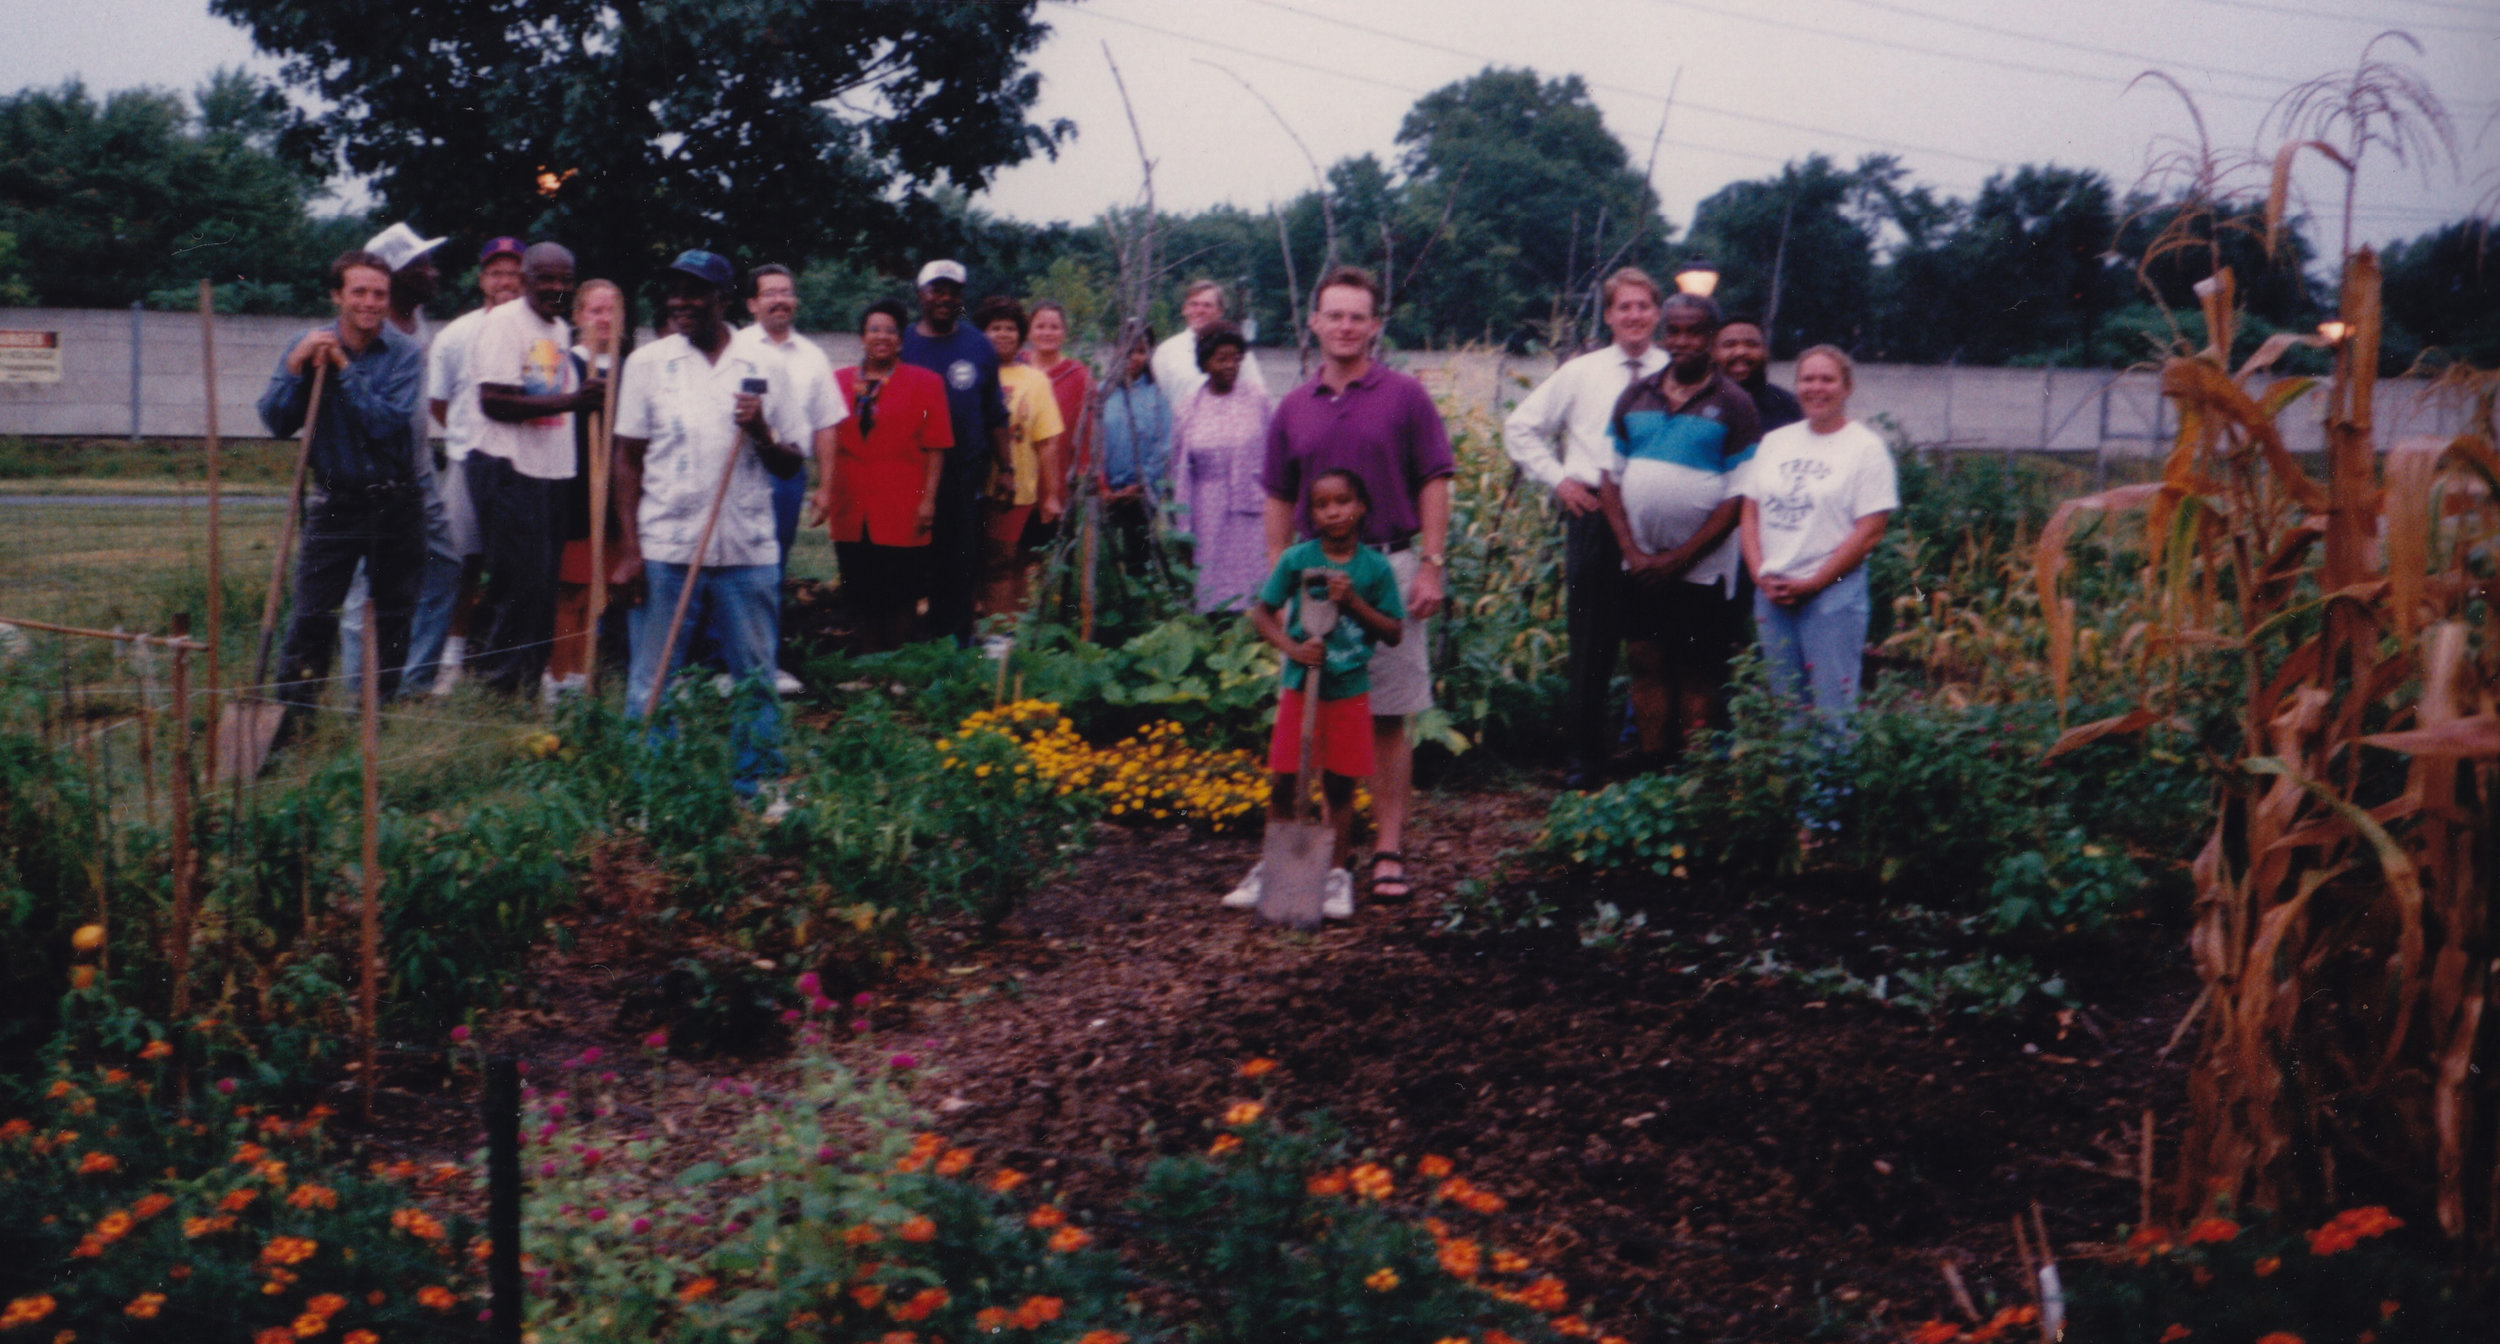 """David Wagoner, left, started a community garden while living in Alexandria, Va. The neighbors called him """"Farmer Dave"""" in 1997, and he's still at it, 20 years later."""